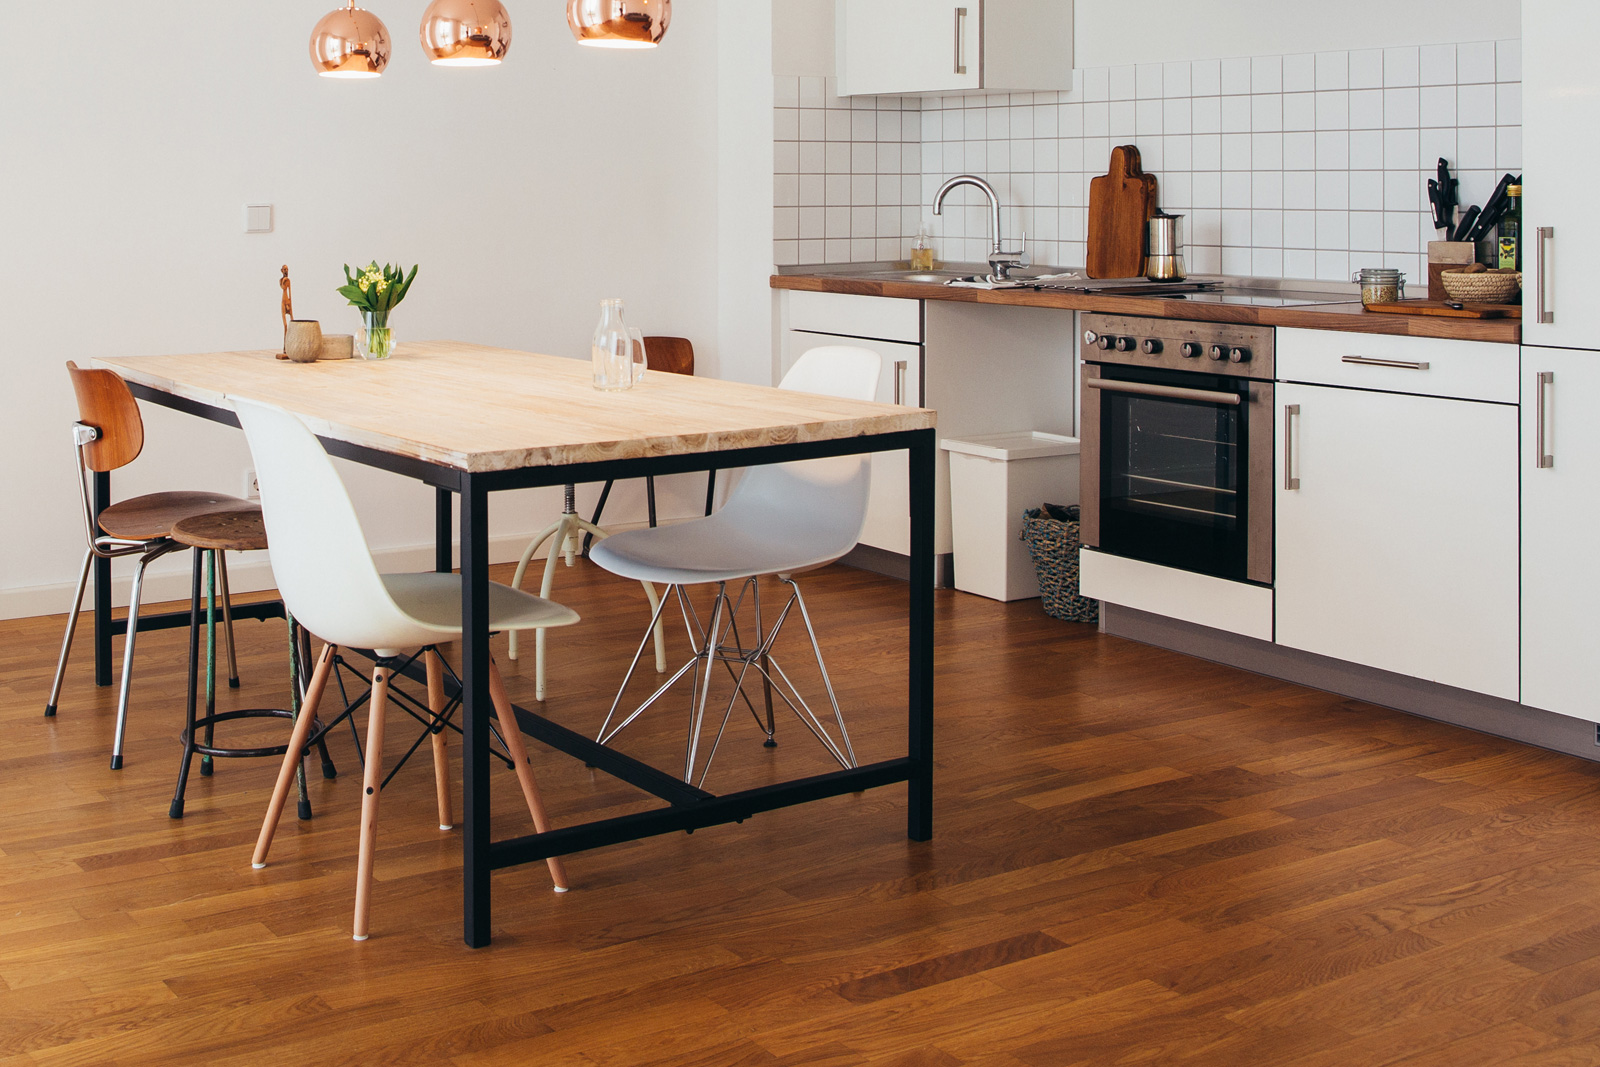 Gentil Many Types Of Materials Can Be Used For Kitchen Floors. There Are Many  Options Which Depend On Factors For Example Comfort, Cost, Stability,  Cleaning Effort ...